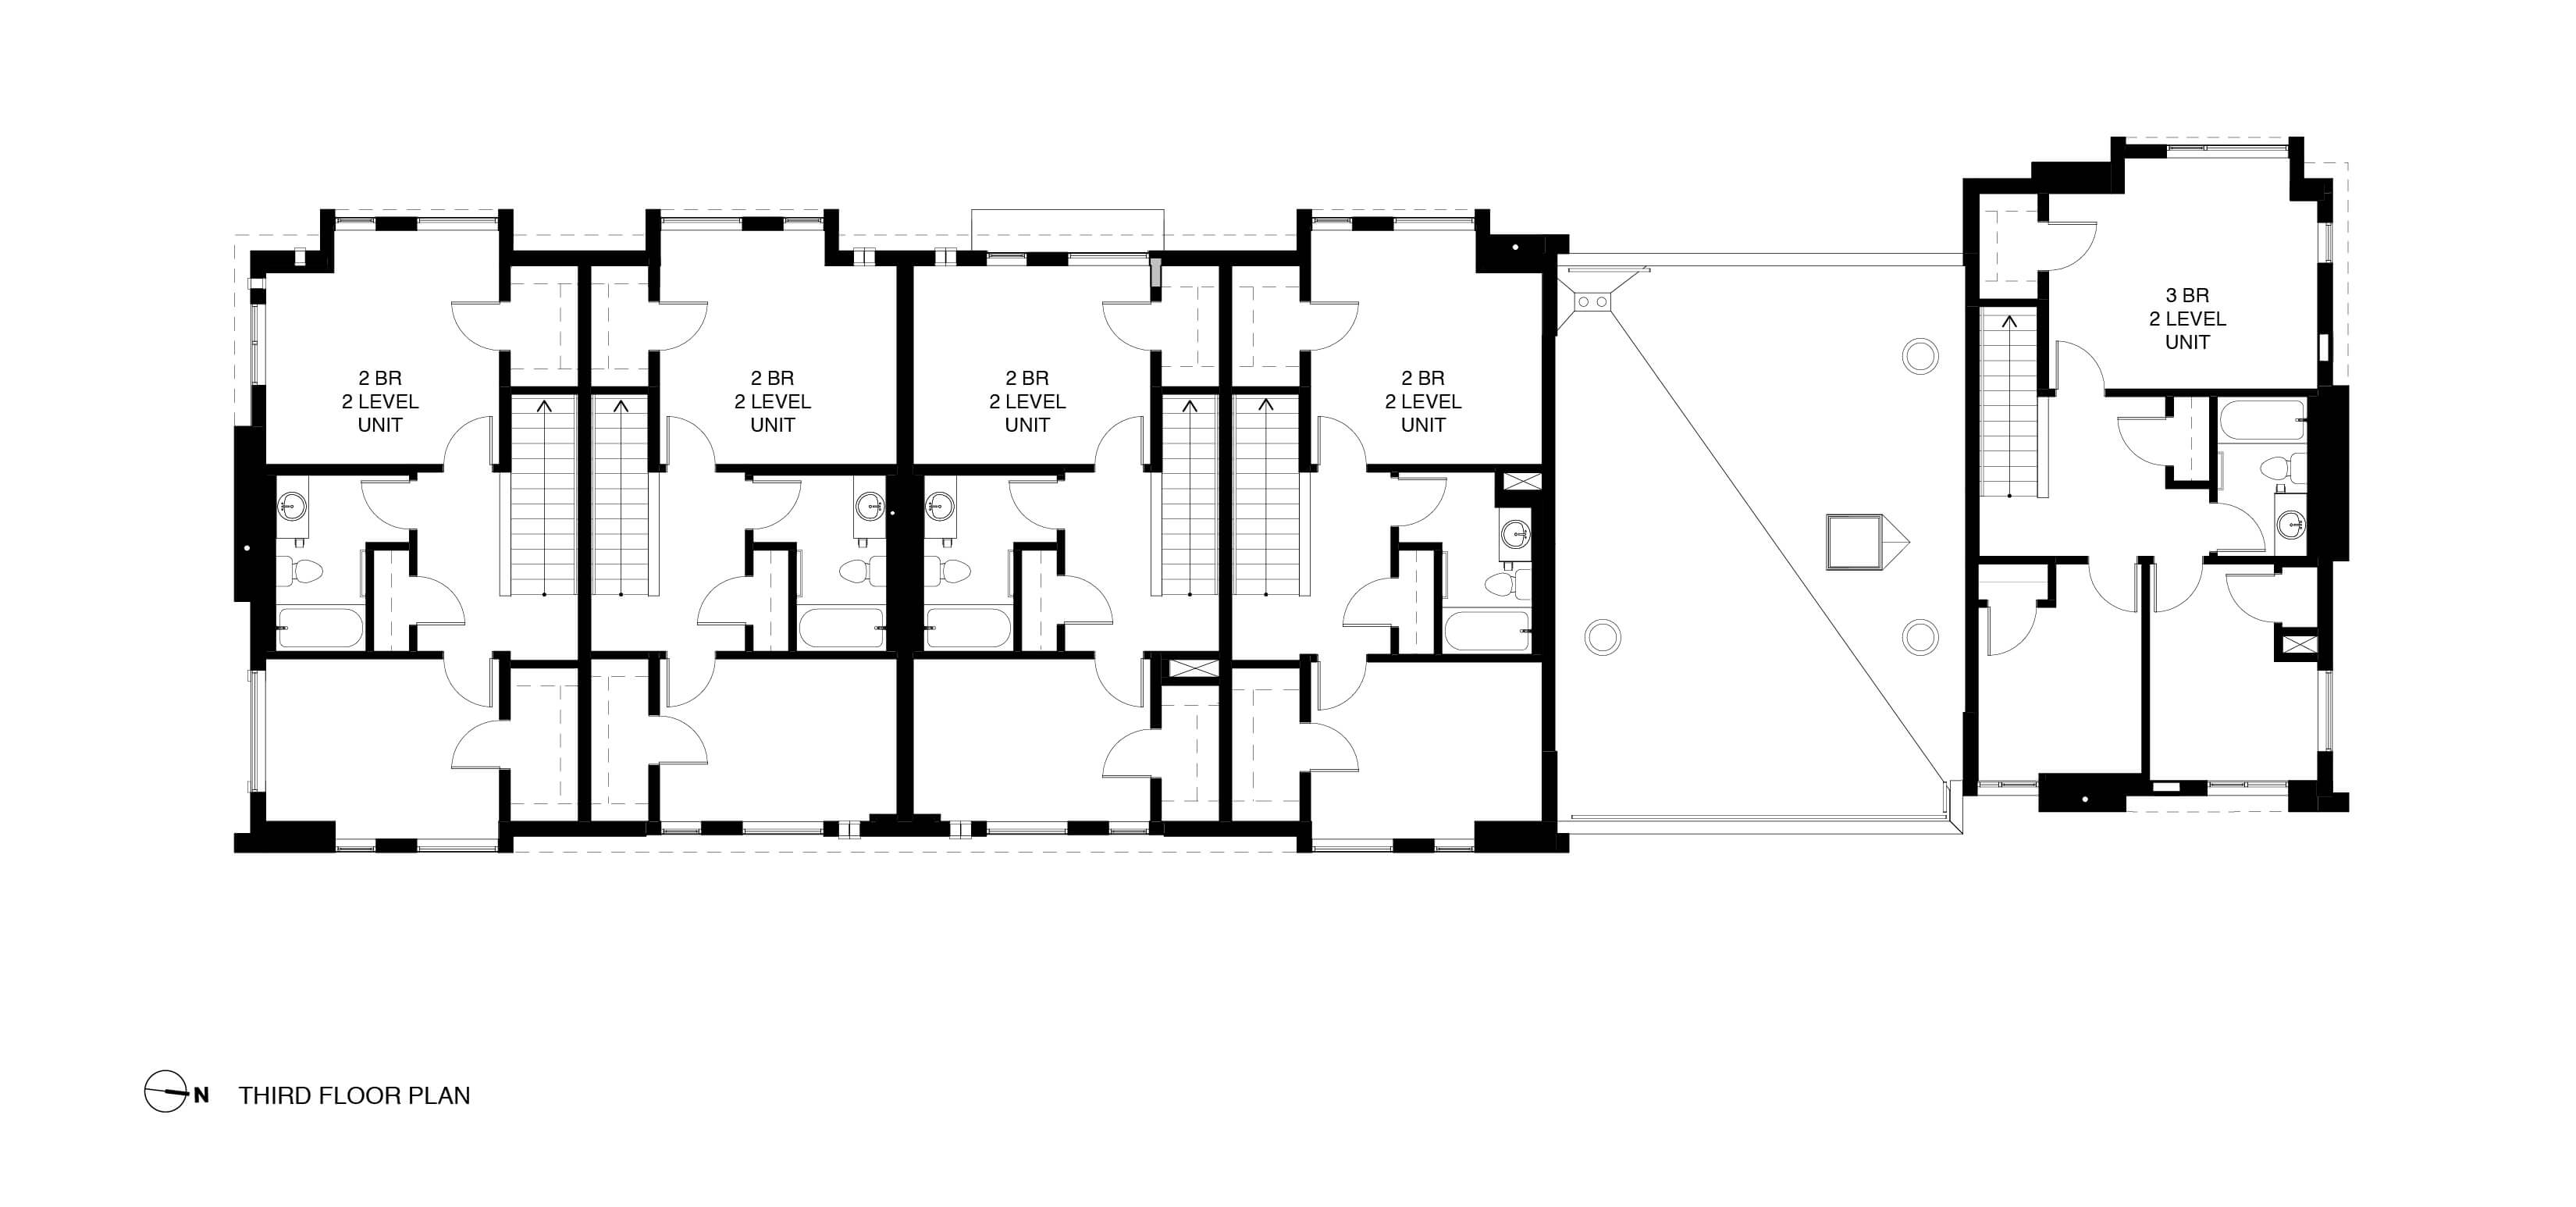 studio vara multifamily 626 mission bay blvd. drawing floor plan